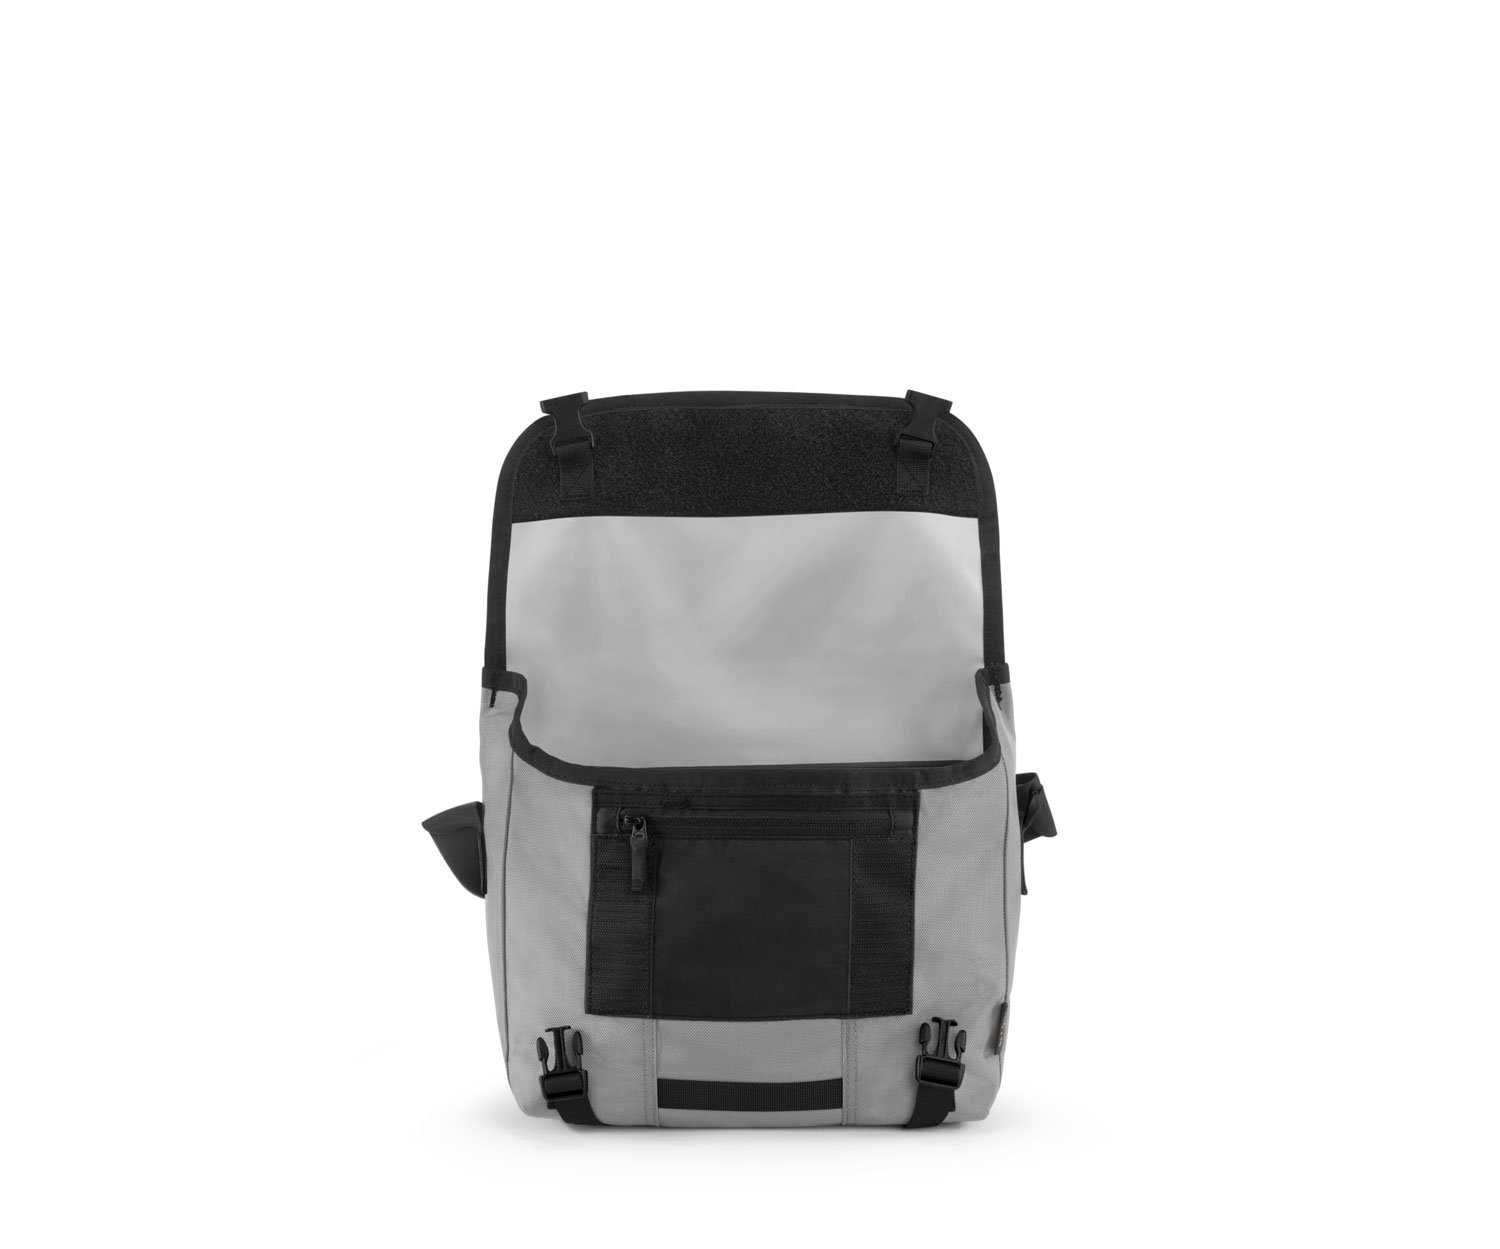 Classic Messenger Bag | Sizes: XS, Small, Med, Large | Timbuk2